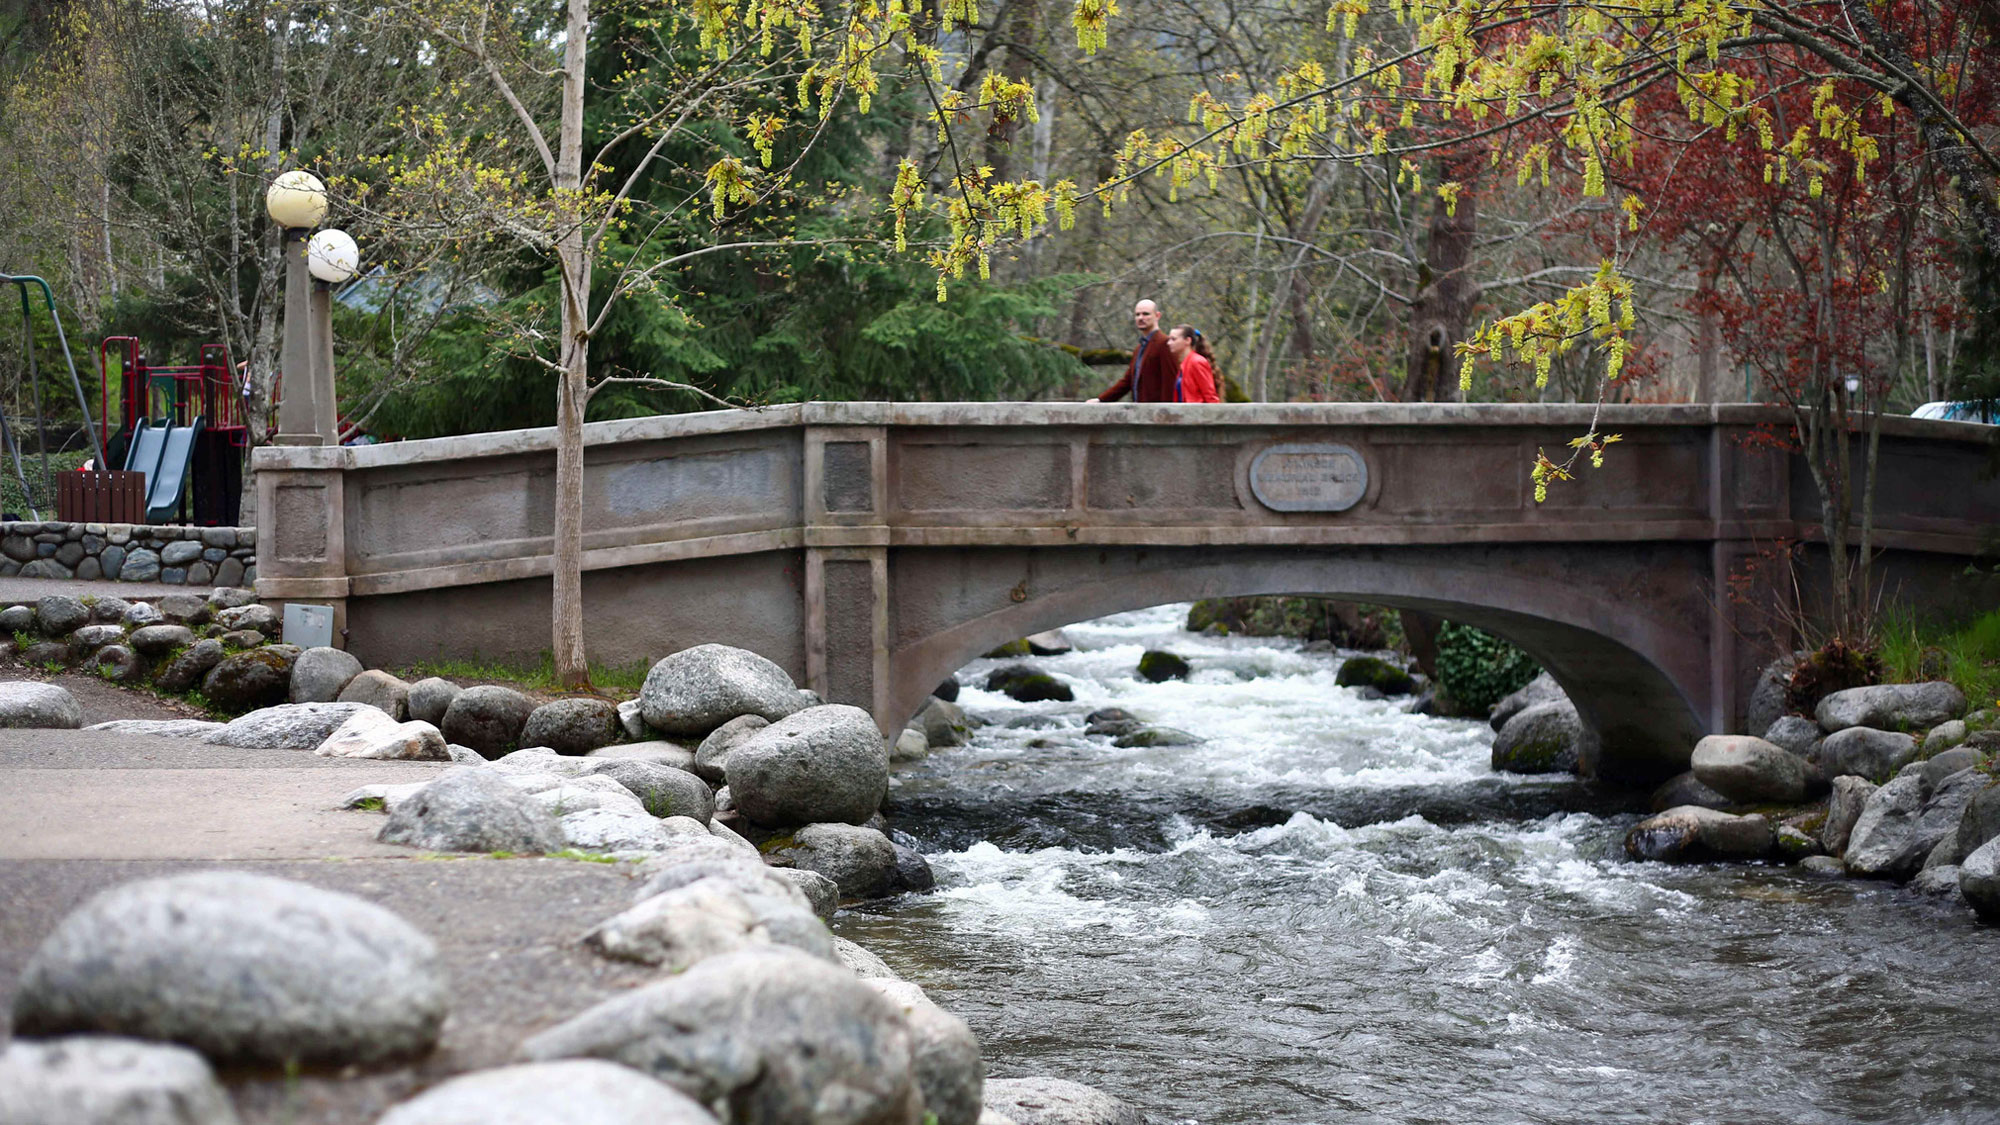 People walk on a bridge over a river during fall.